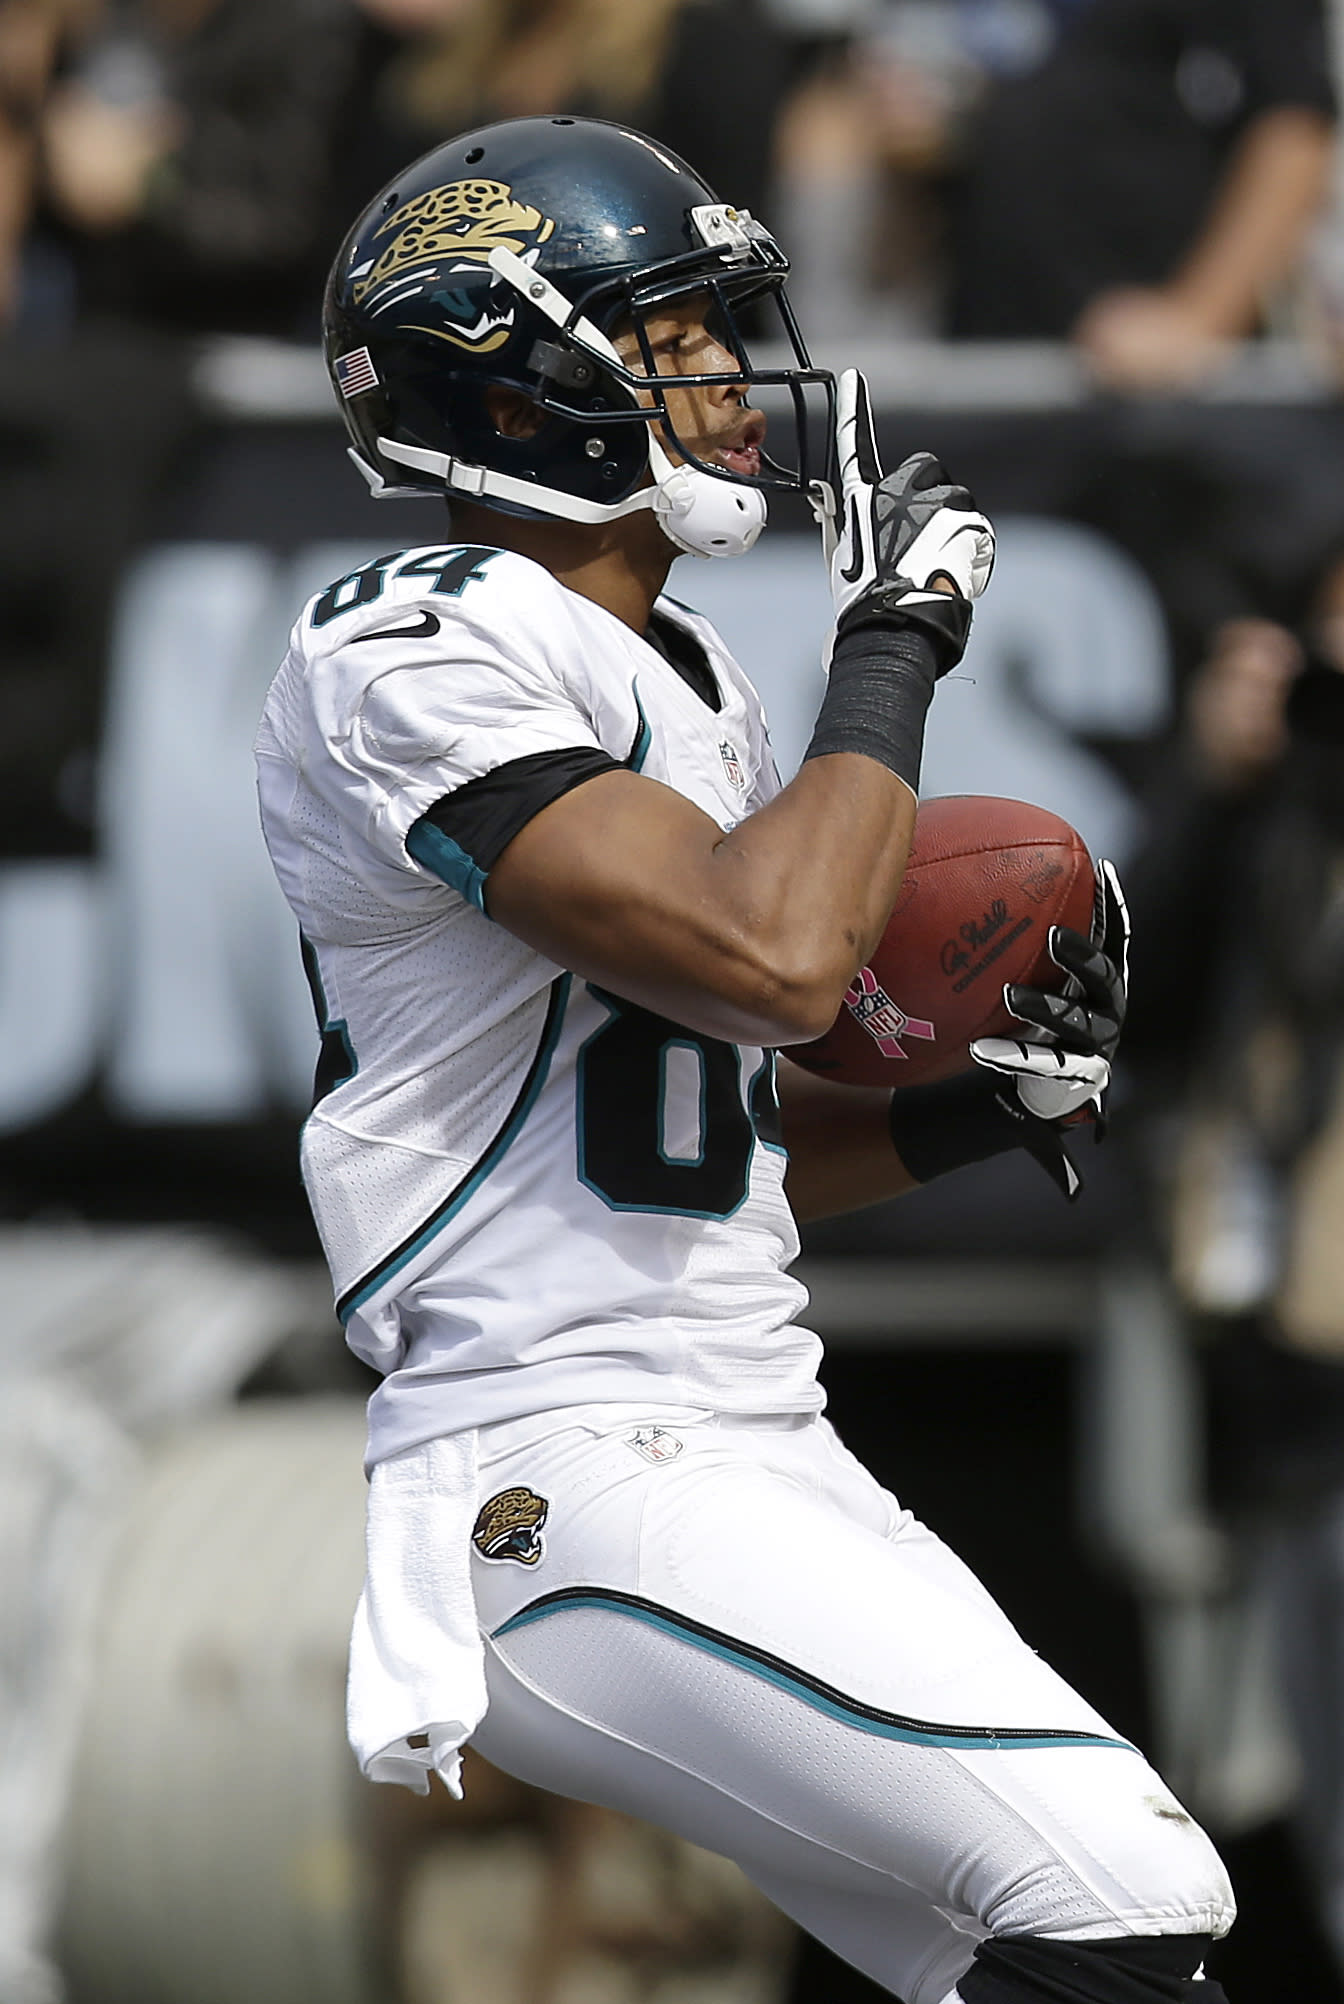 Jacksonville Jaguars wide receiver Cecil Shorts (84) celebrates after scoring on a 42-yard touchdown reception against the Oakland Raiders during the first quarter of an NFL football game, Sunday, Oct. 21, 2012, in Oakland, Calif. (AP Photo/Marcio Jose Sanchez)